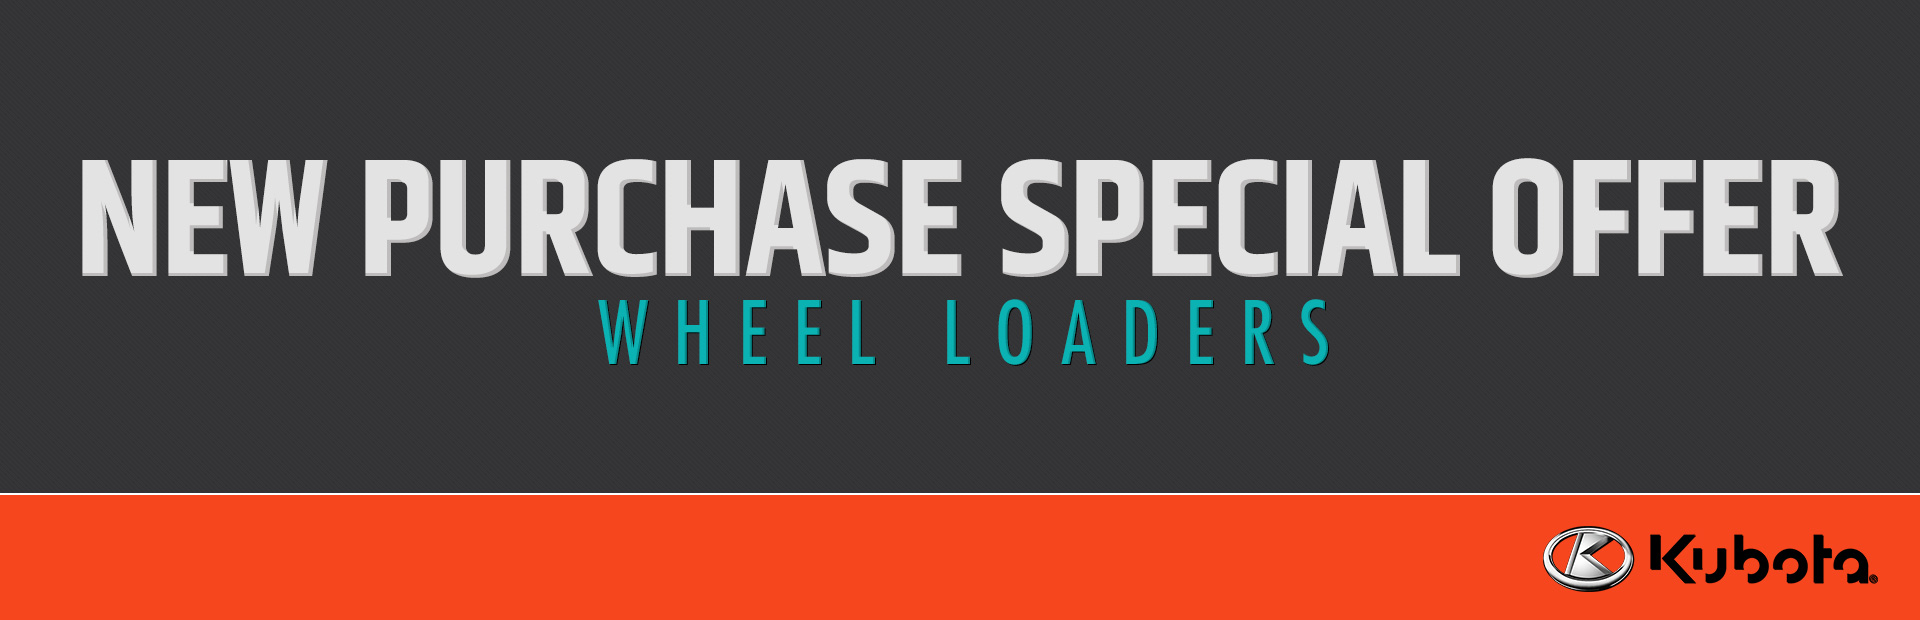 New Purchase Special Offer - Wheel Loaders